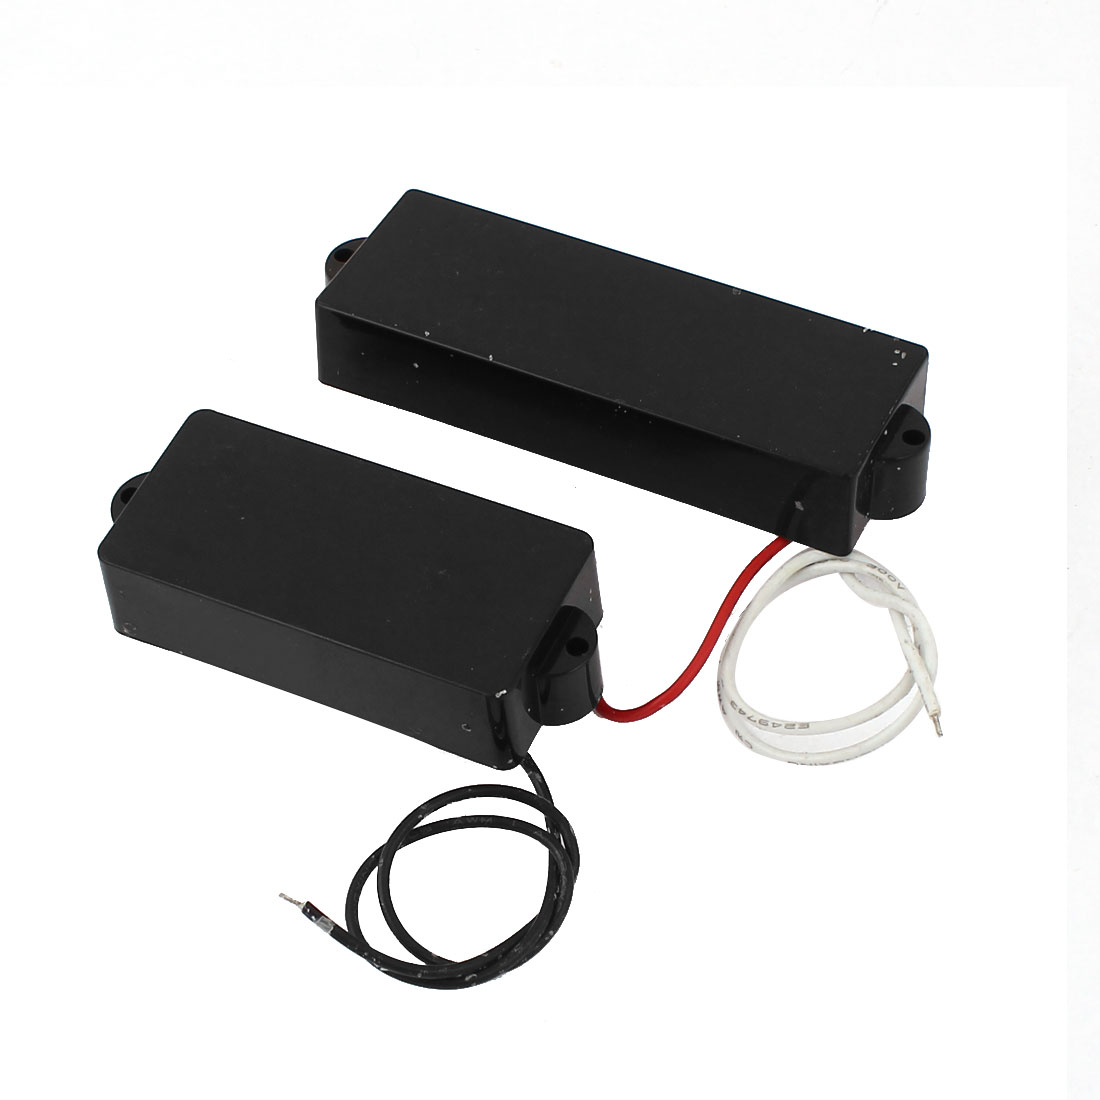 2 Pcs Electric 4 String PB Style Bass Sealed Soap Bar Pickup Black